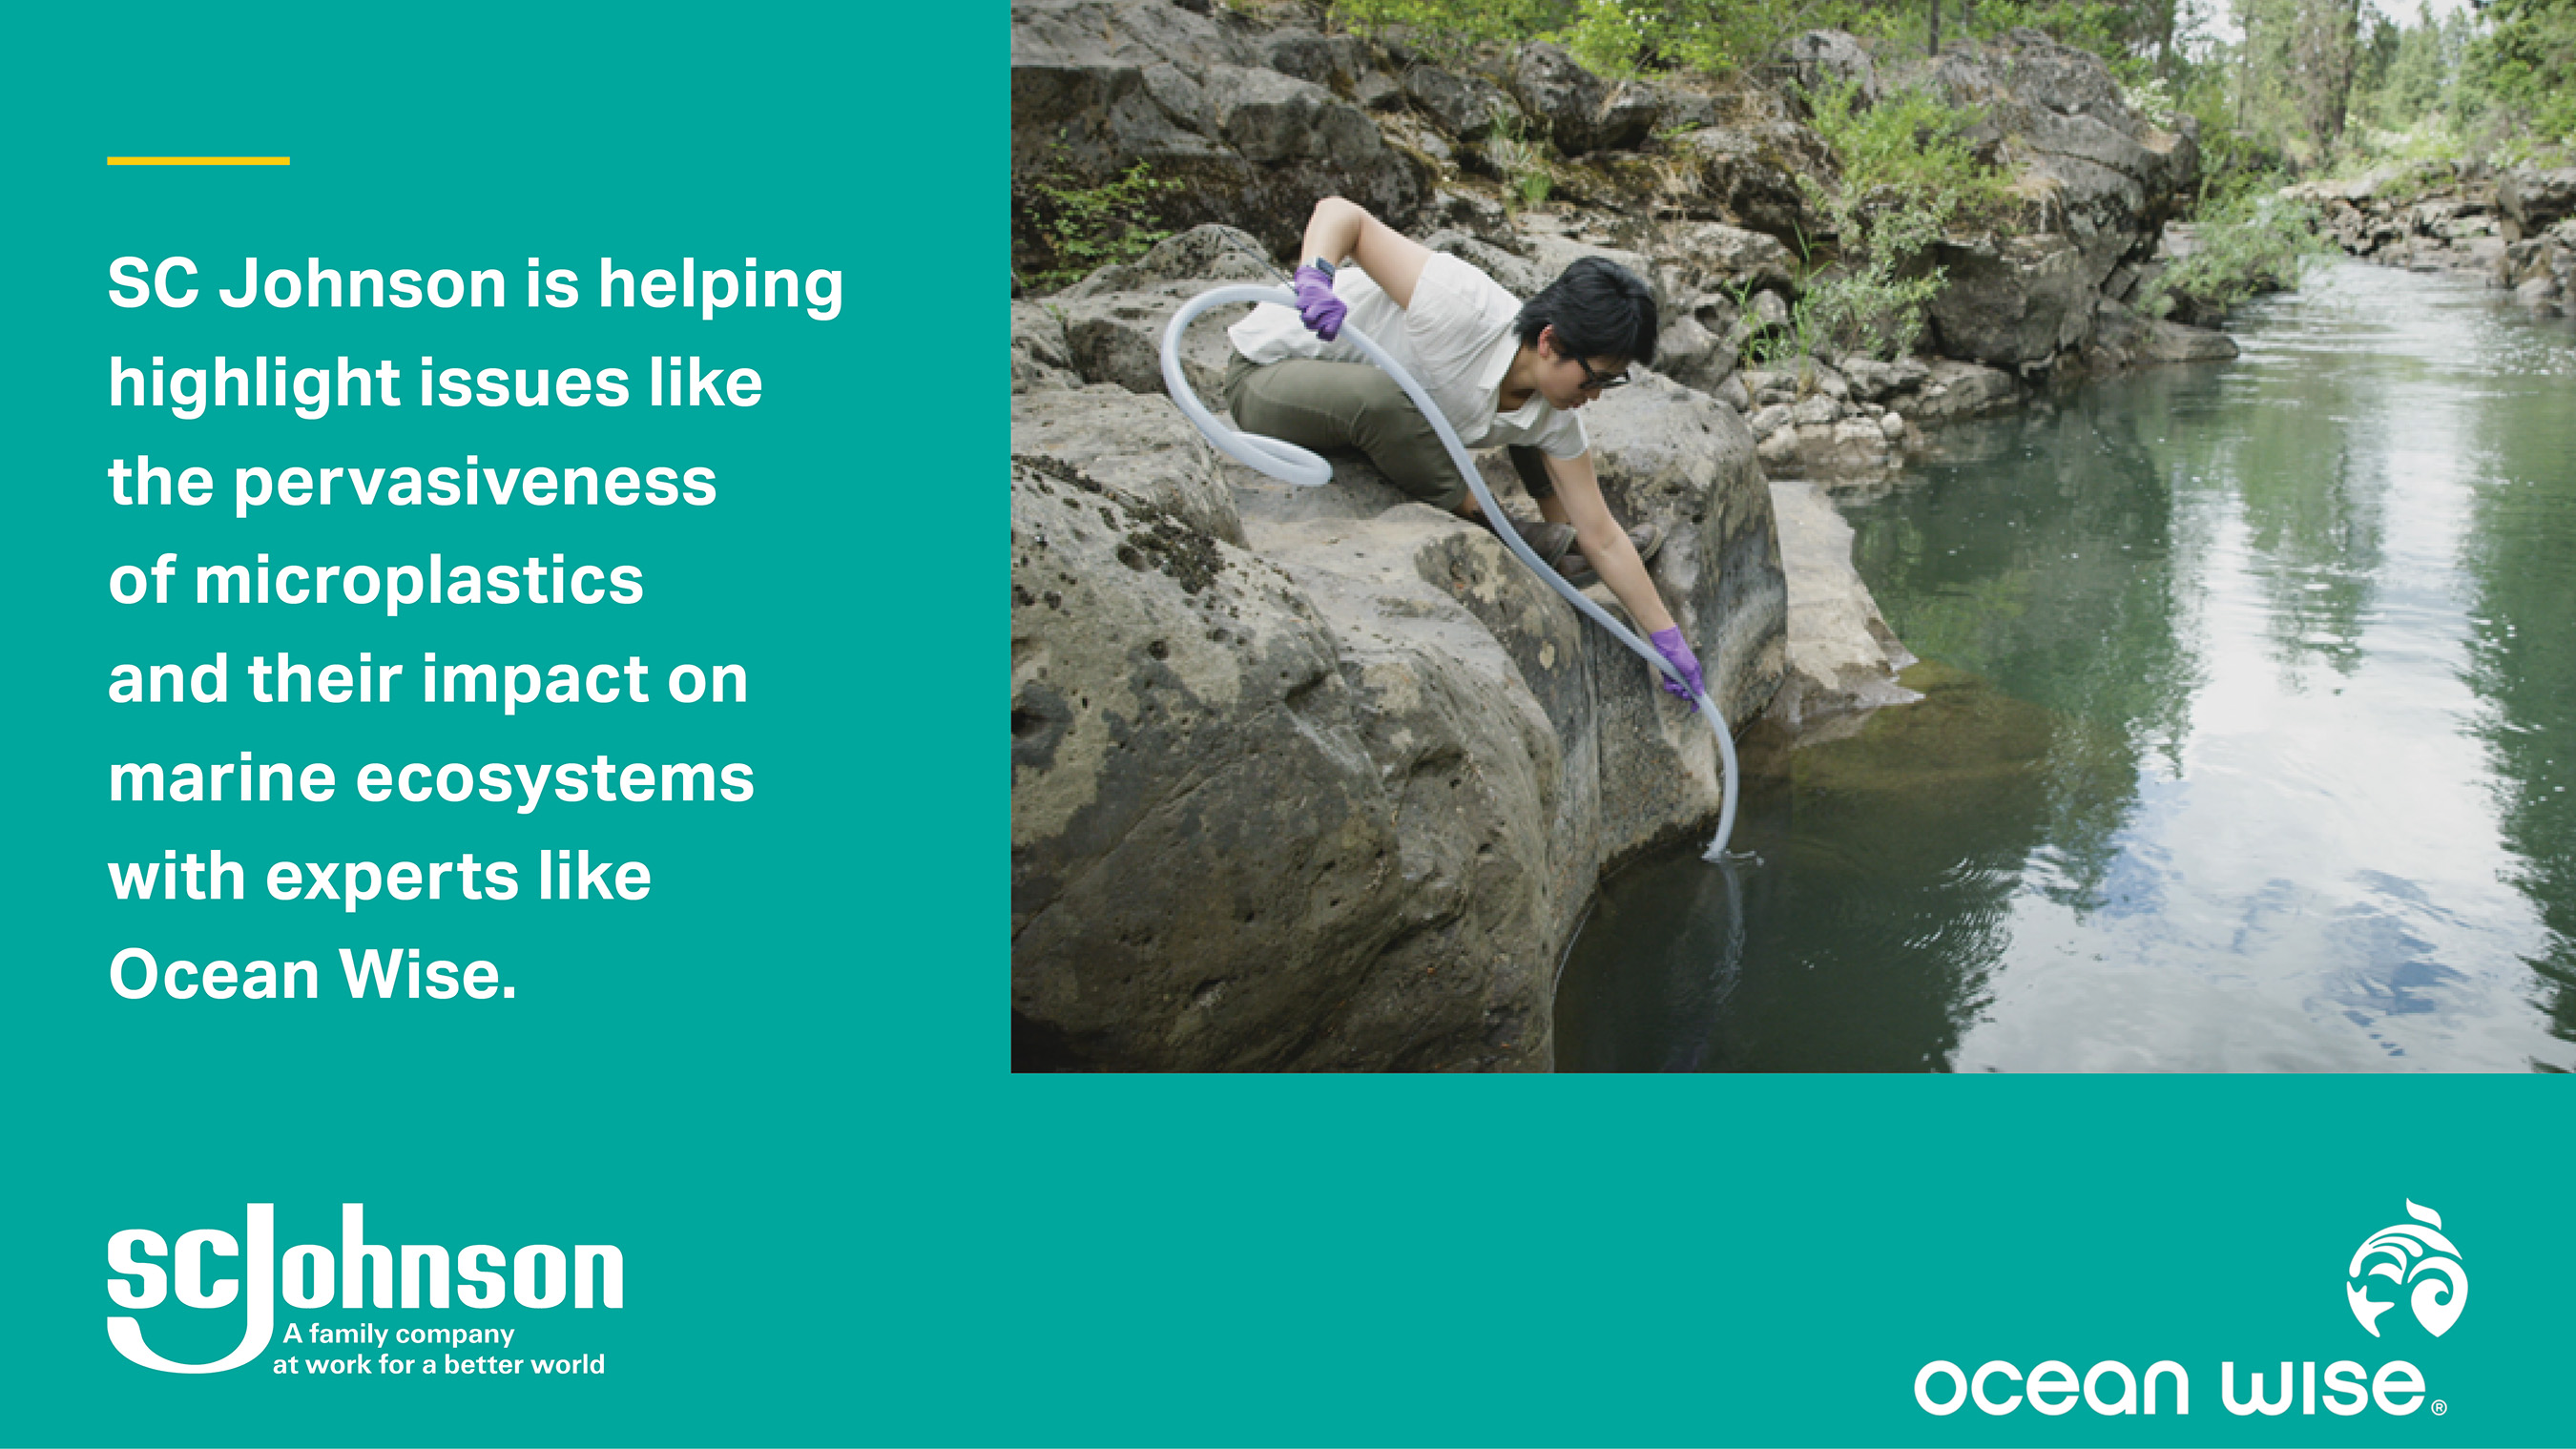 A scientist from Ocean Wise tests a river for microplastics.